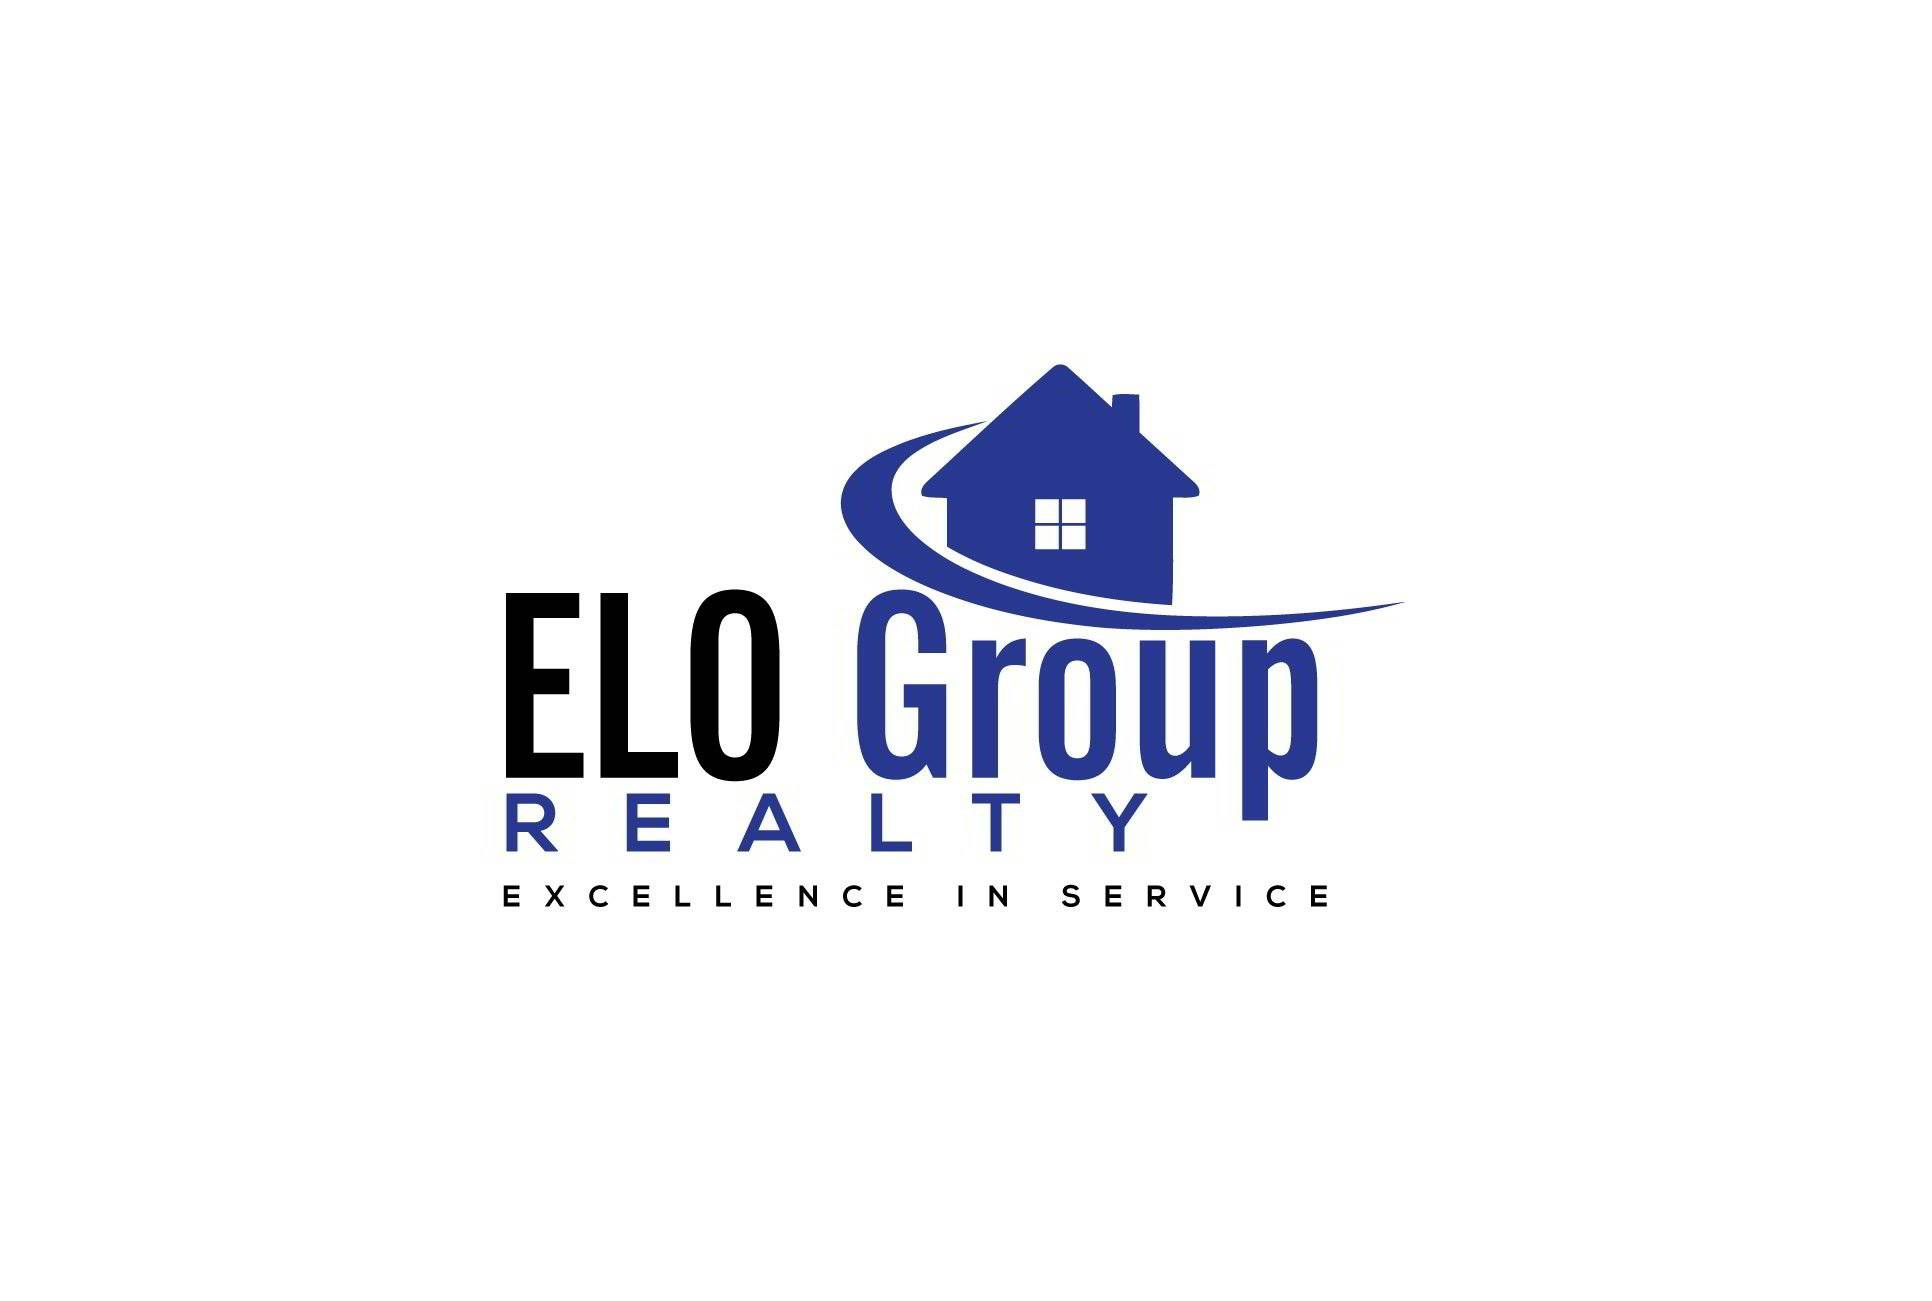 Elo Group Realty